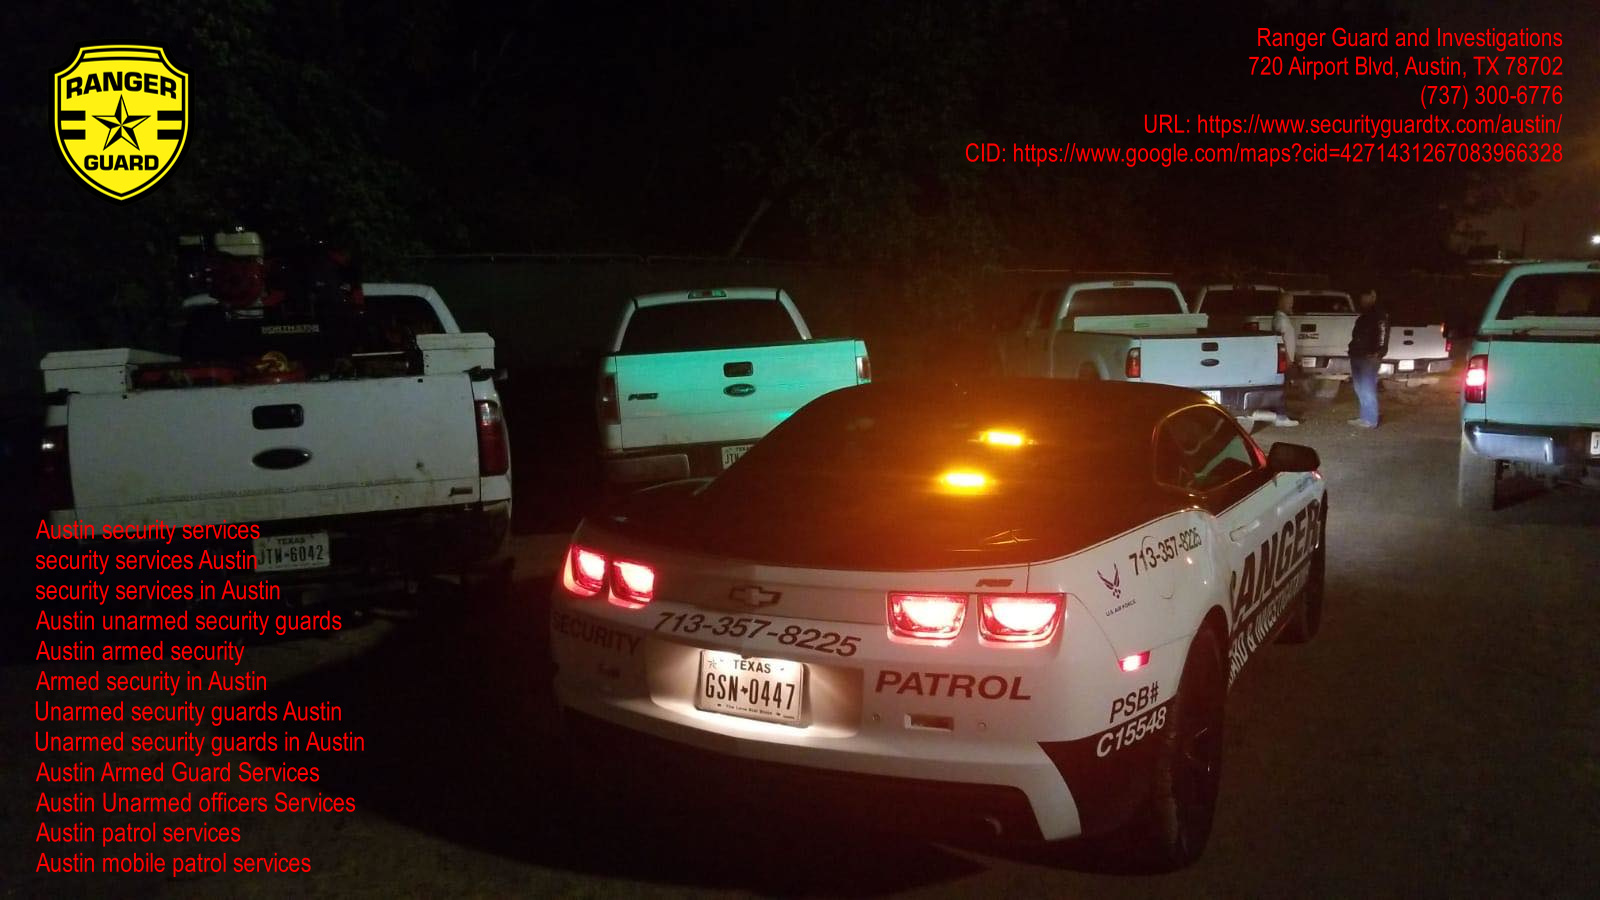 Ranger Guard and Investigations Now Serves the Whole Austin Area 1